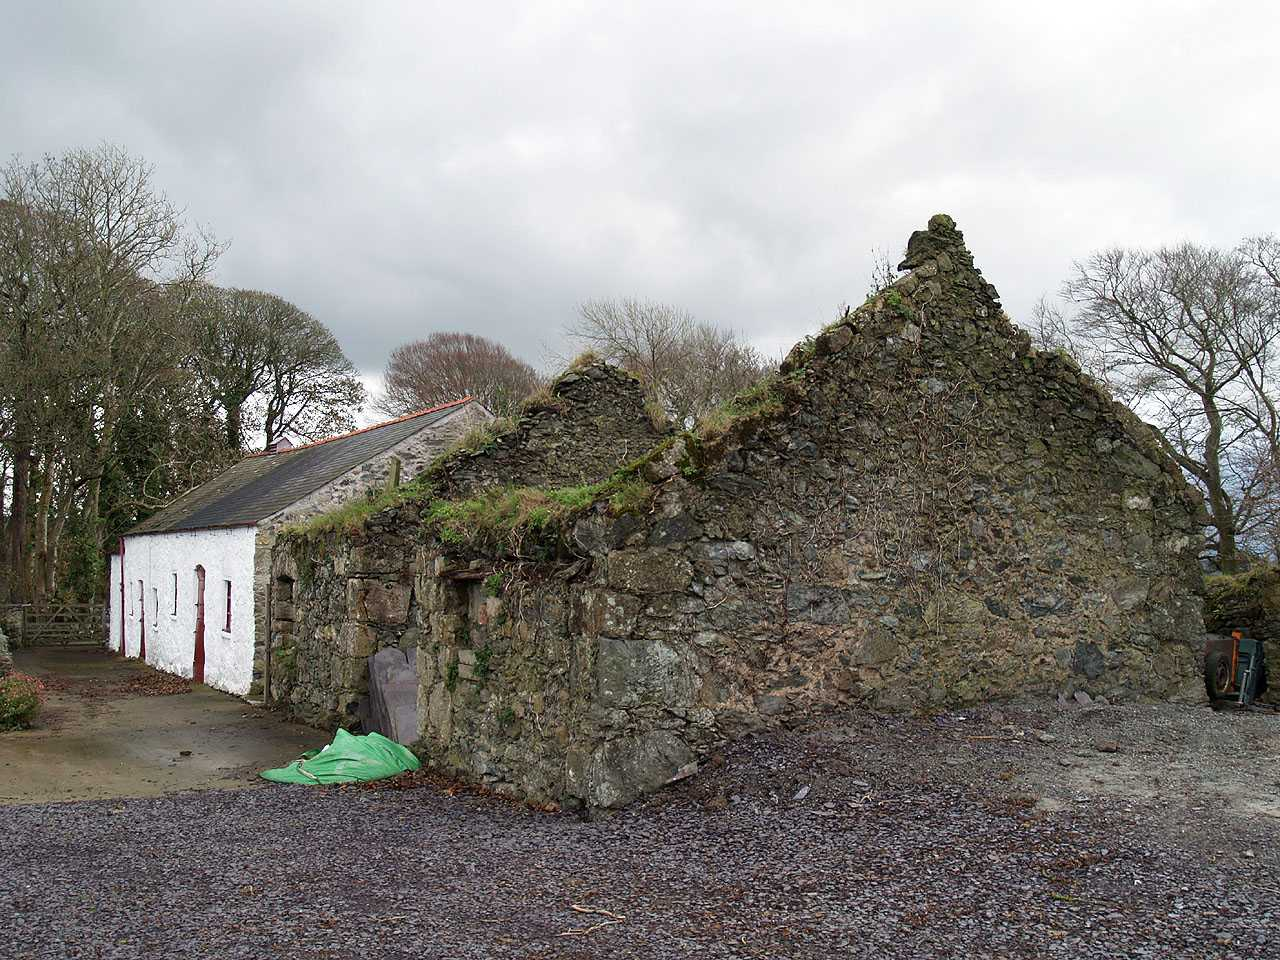 Anglesey, Llangefni Water Mill - ruined building - part of the farm buildings - Nov 2009